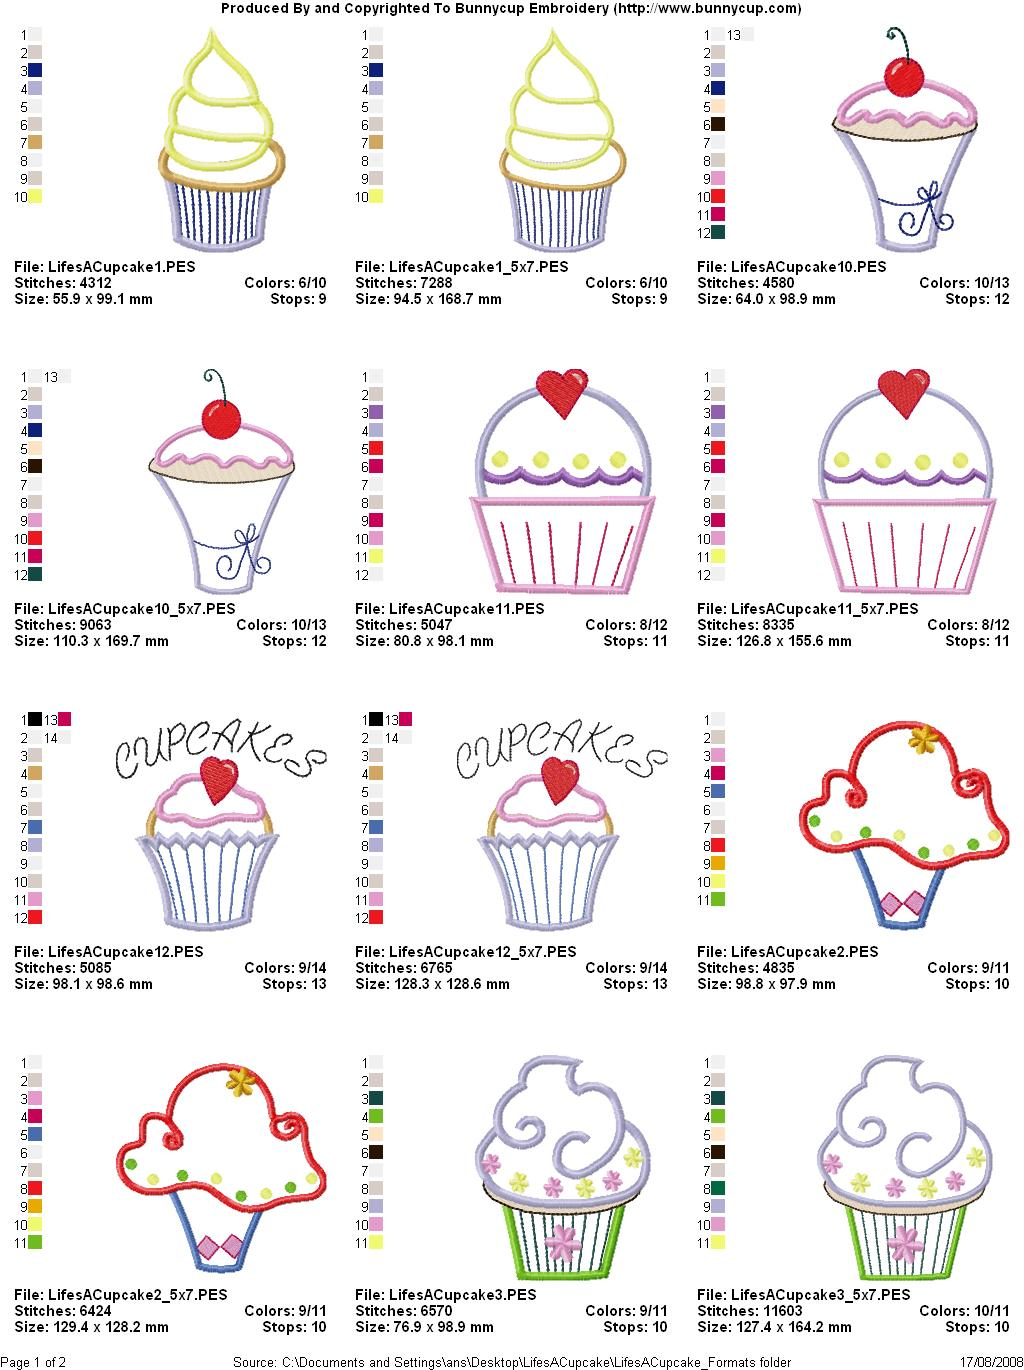 Lifes a cupcake embroidery designs bunnycup